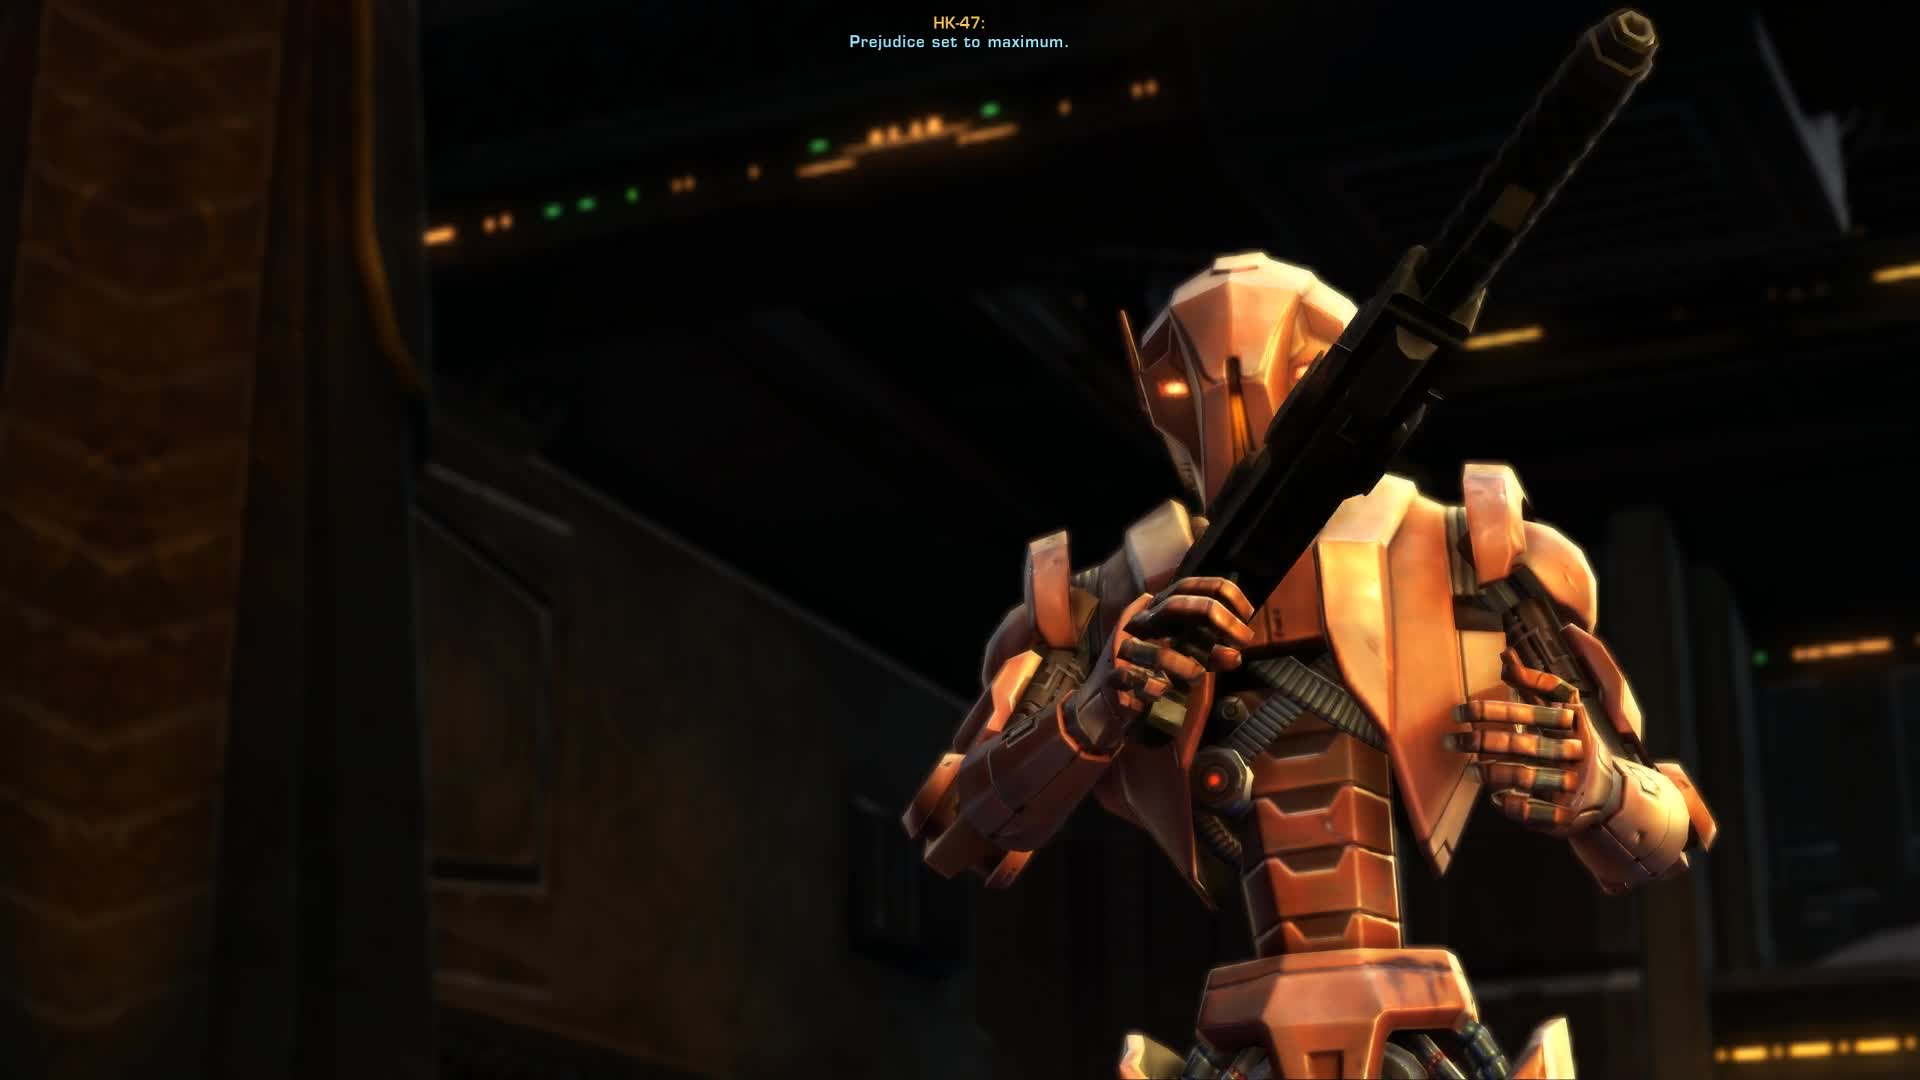 hk-47, mmo, mmorpg, star wars, star wars the old republic, swtor, the old republic, tor, HK-47 GIFs